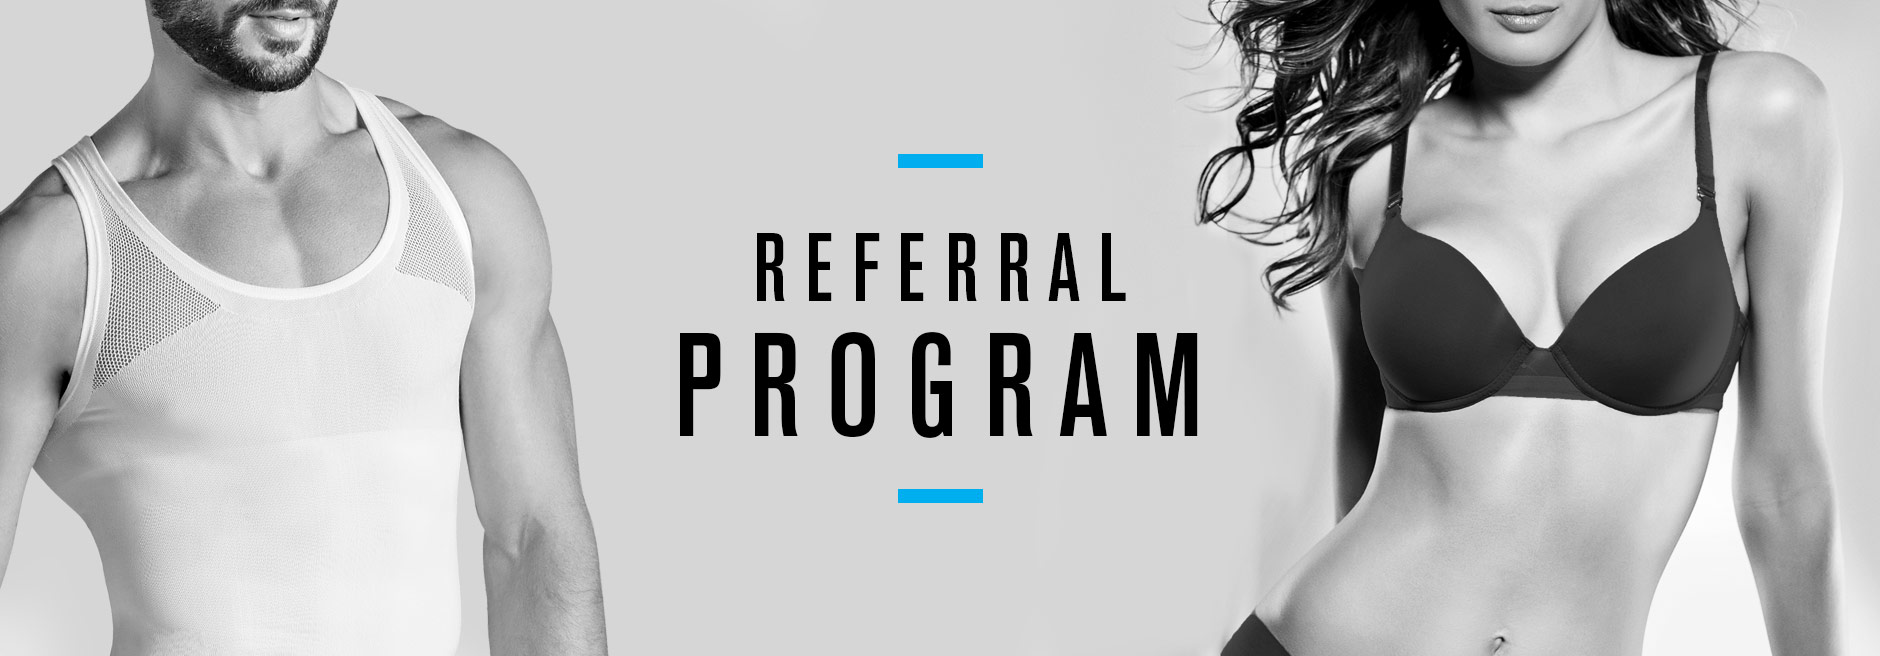 Leonisa.com Referral Program